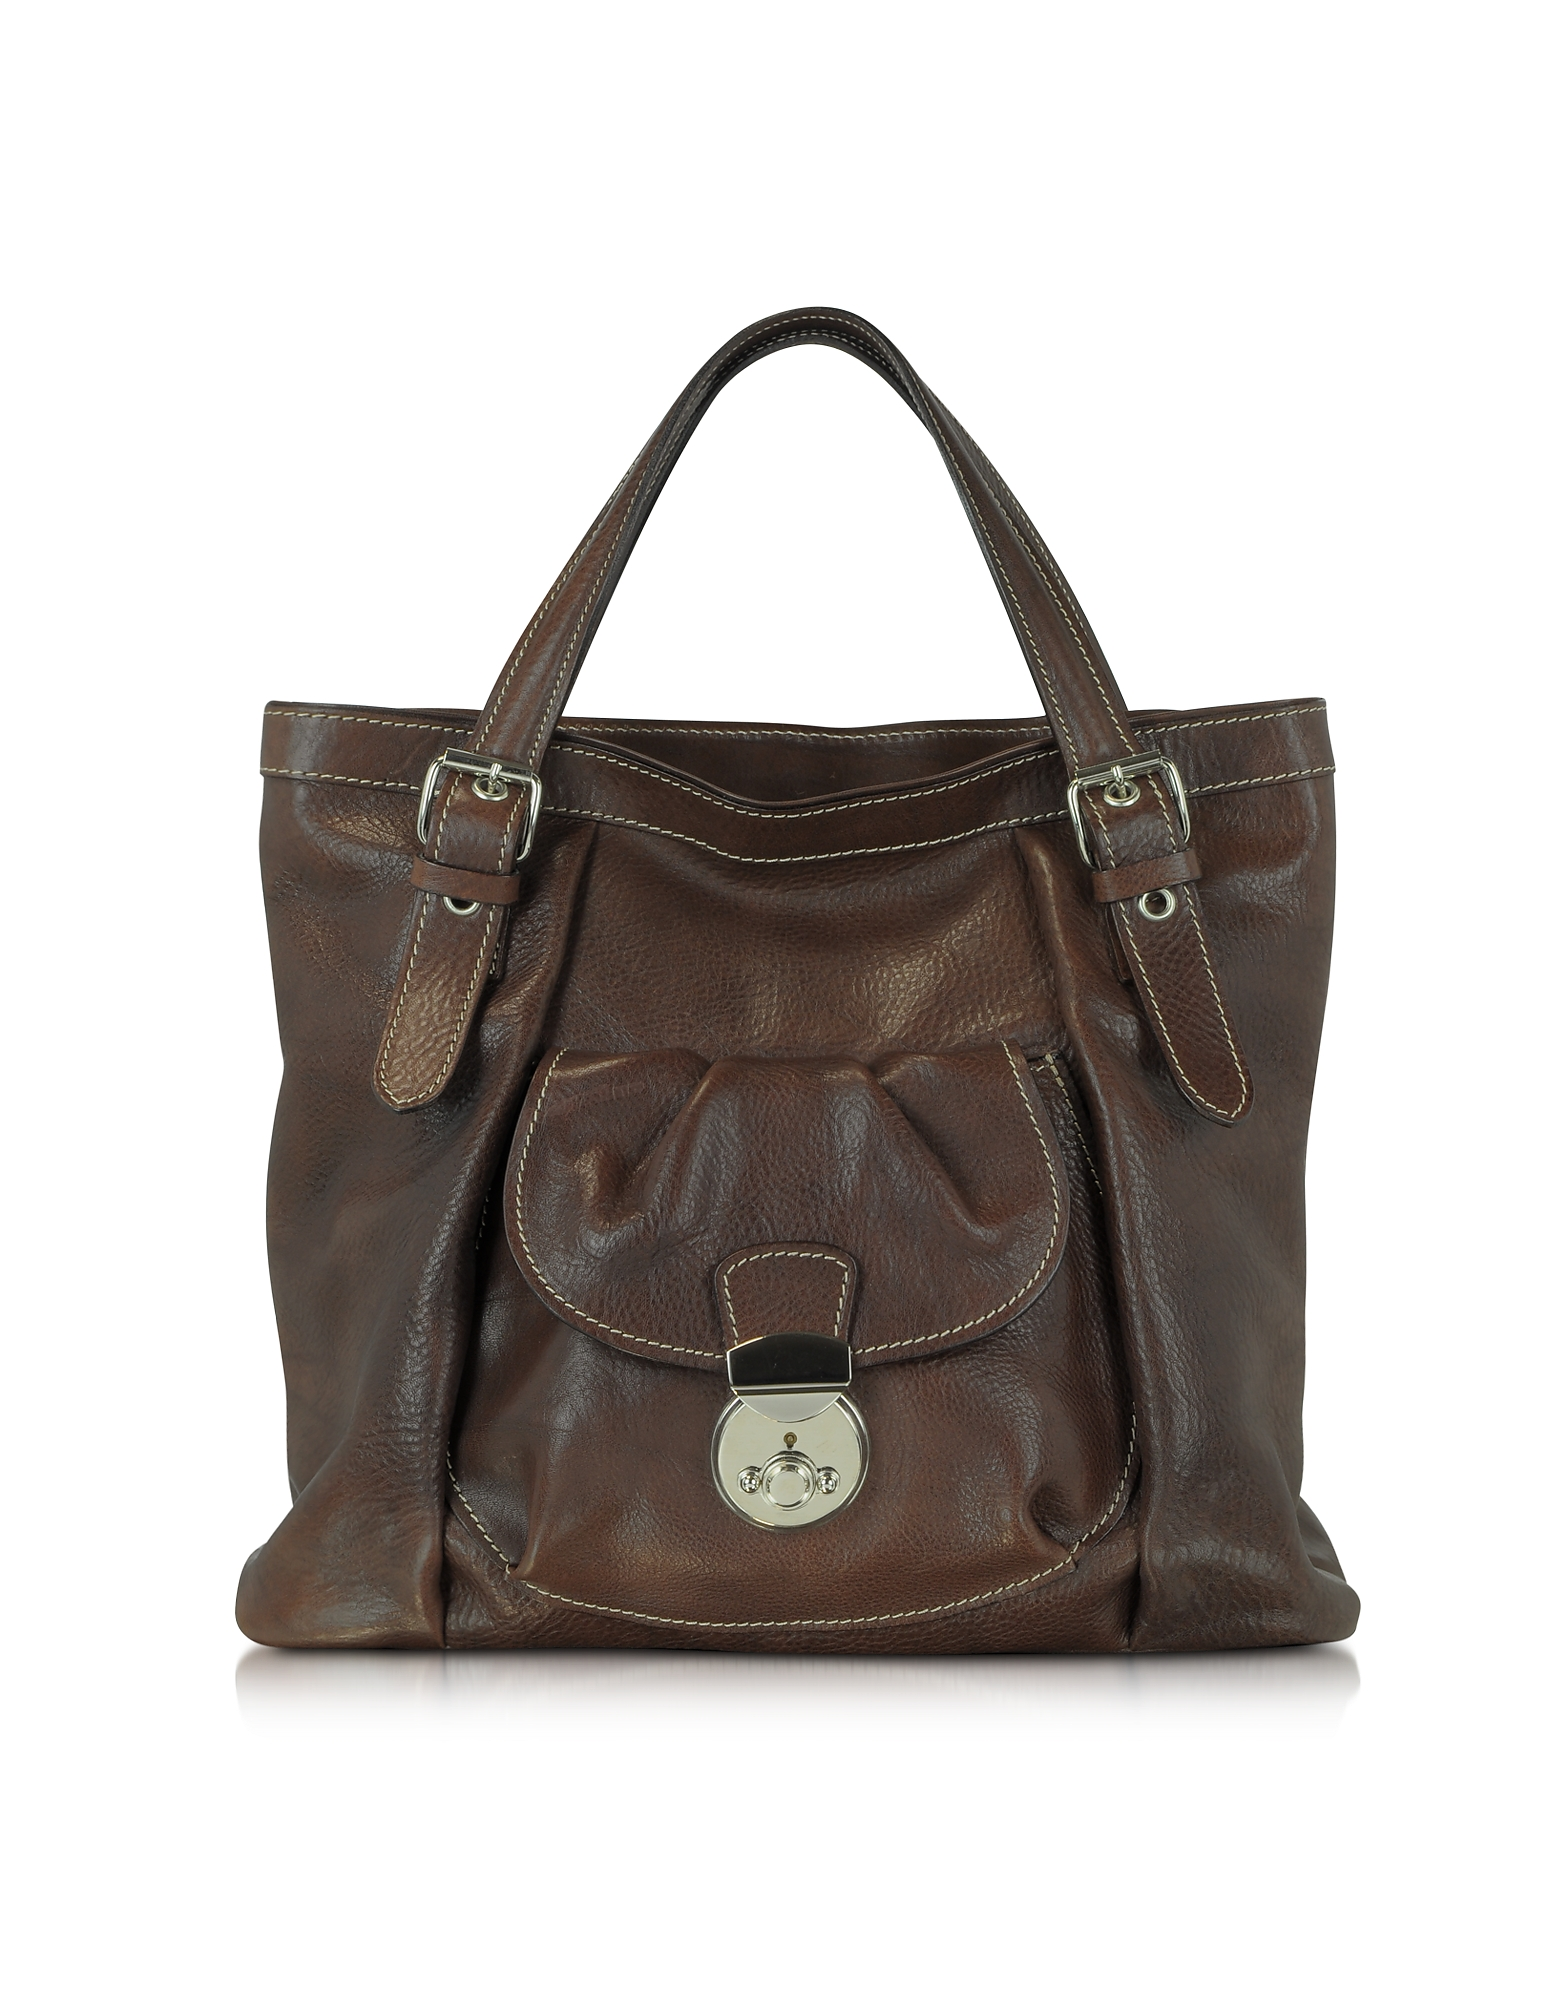 Robe di Firenze Designer Handbags, Dark Brown Italian Leather Tote (Luggage & Bags) photo